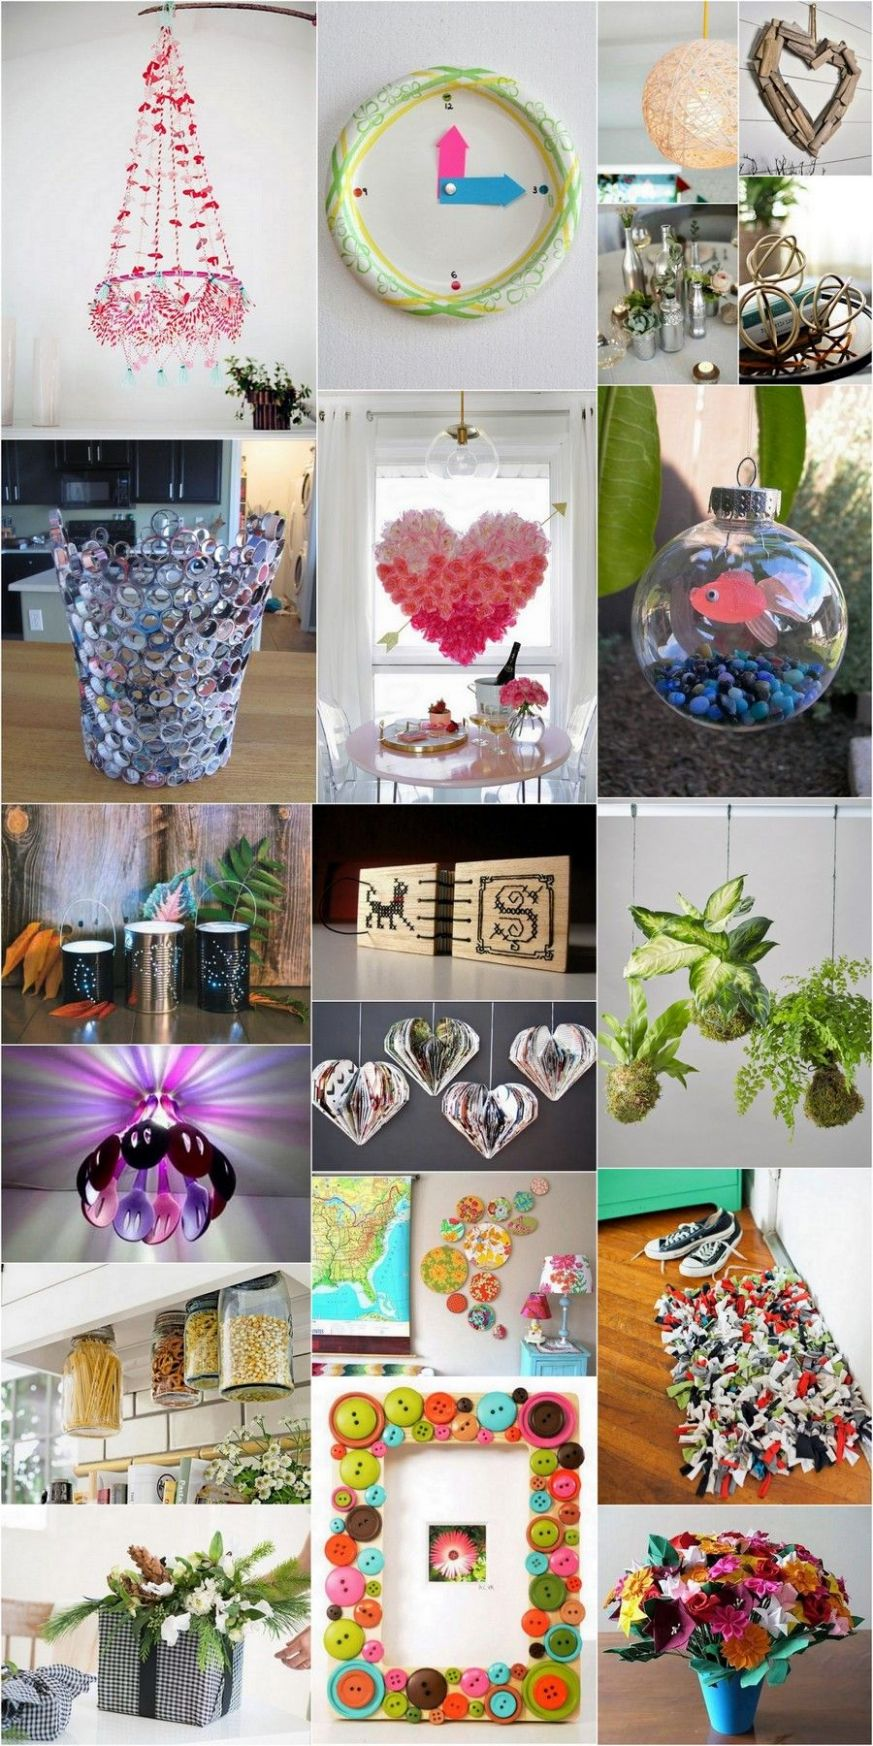 Creative Ideas to Re-purpose Old Stuff | Diy and crafts sewing ...